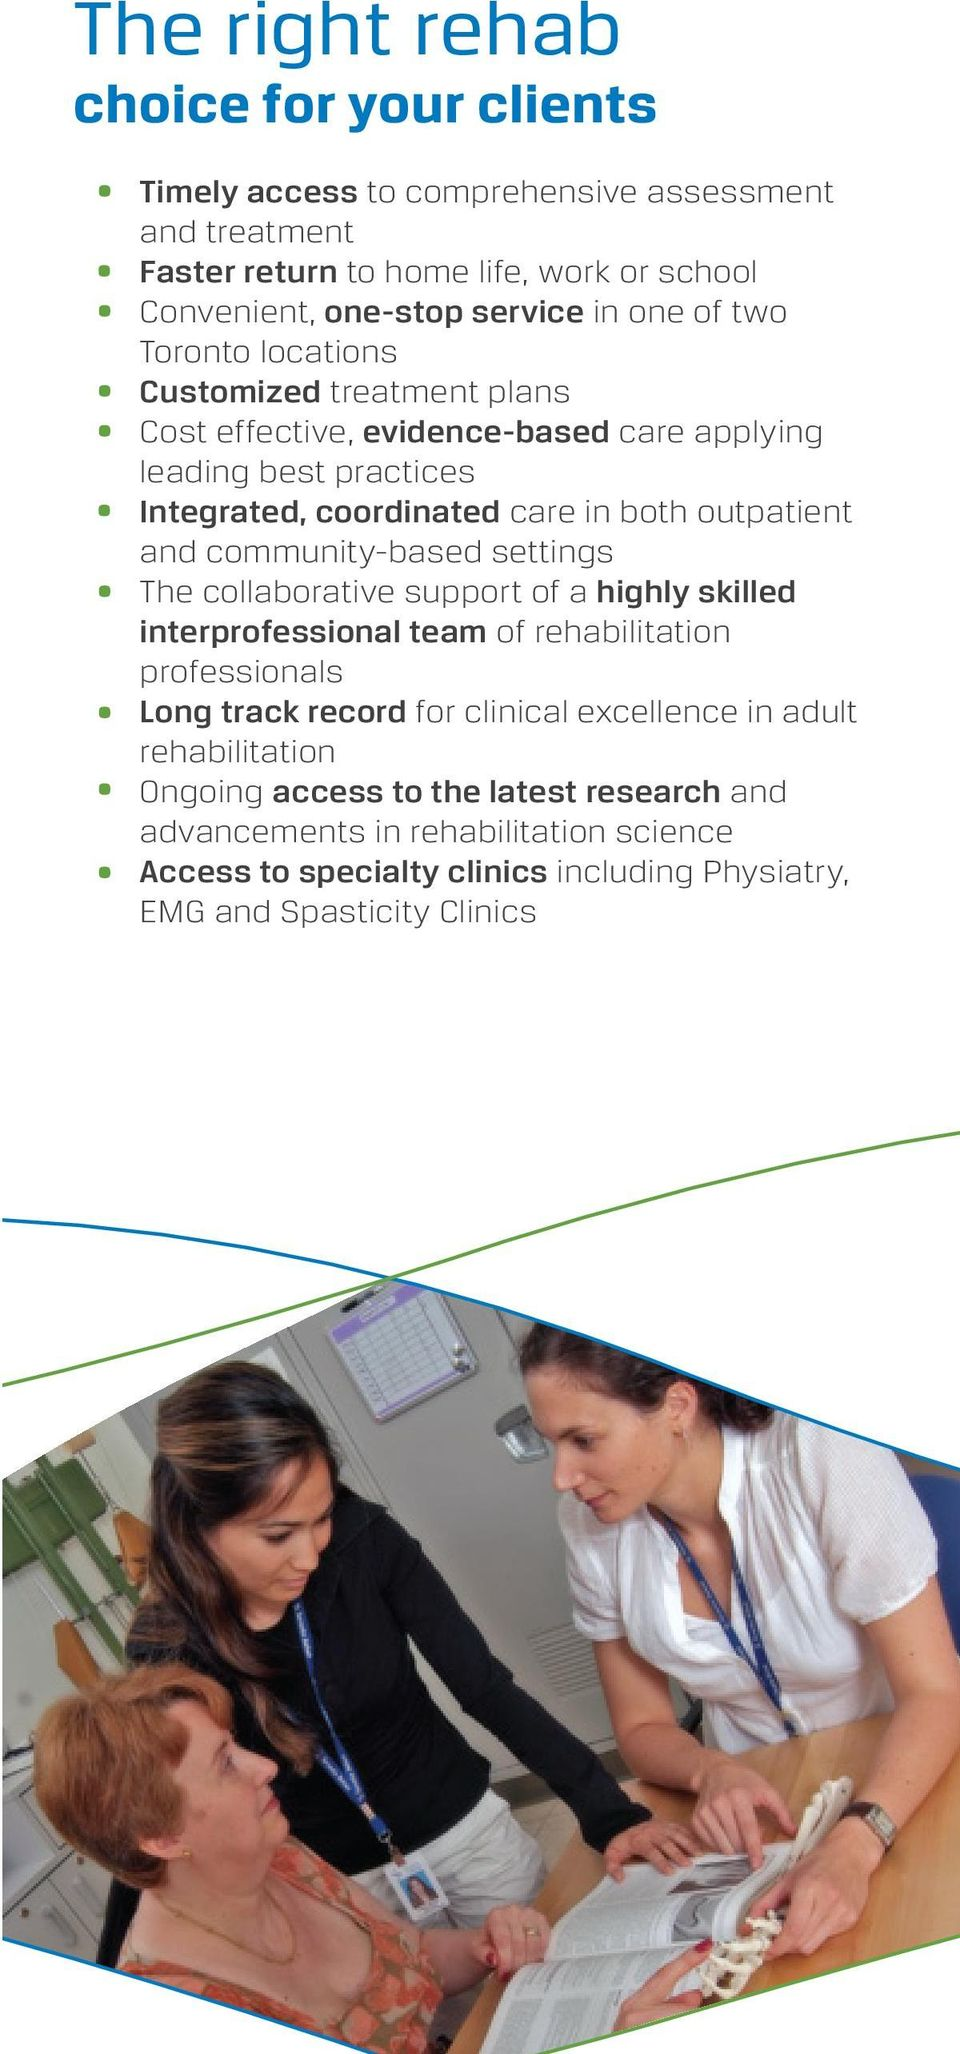 and community-based settings The collaborative support of a highly skilled interprofessional team of rehabilitation professionals Long track record for clinical excellence